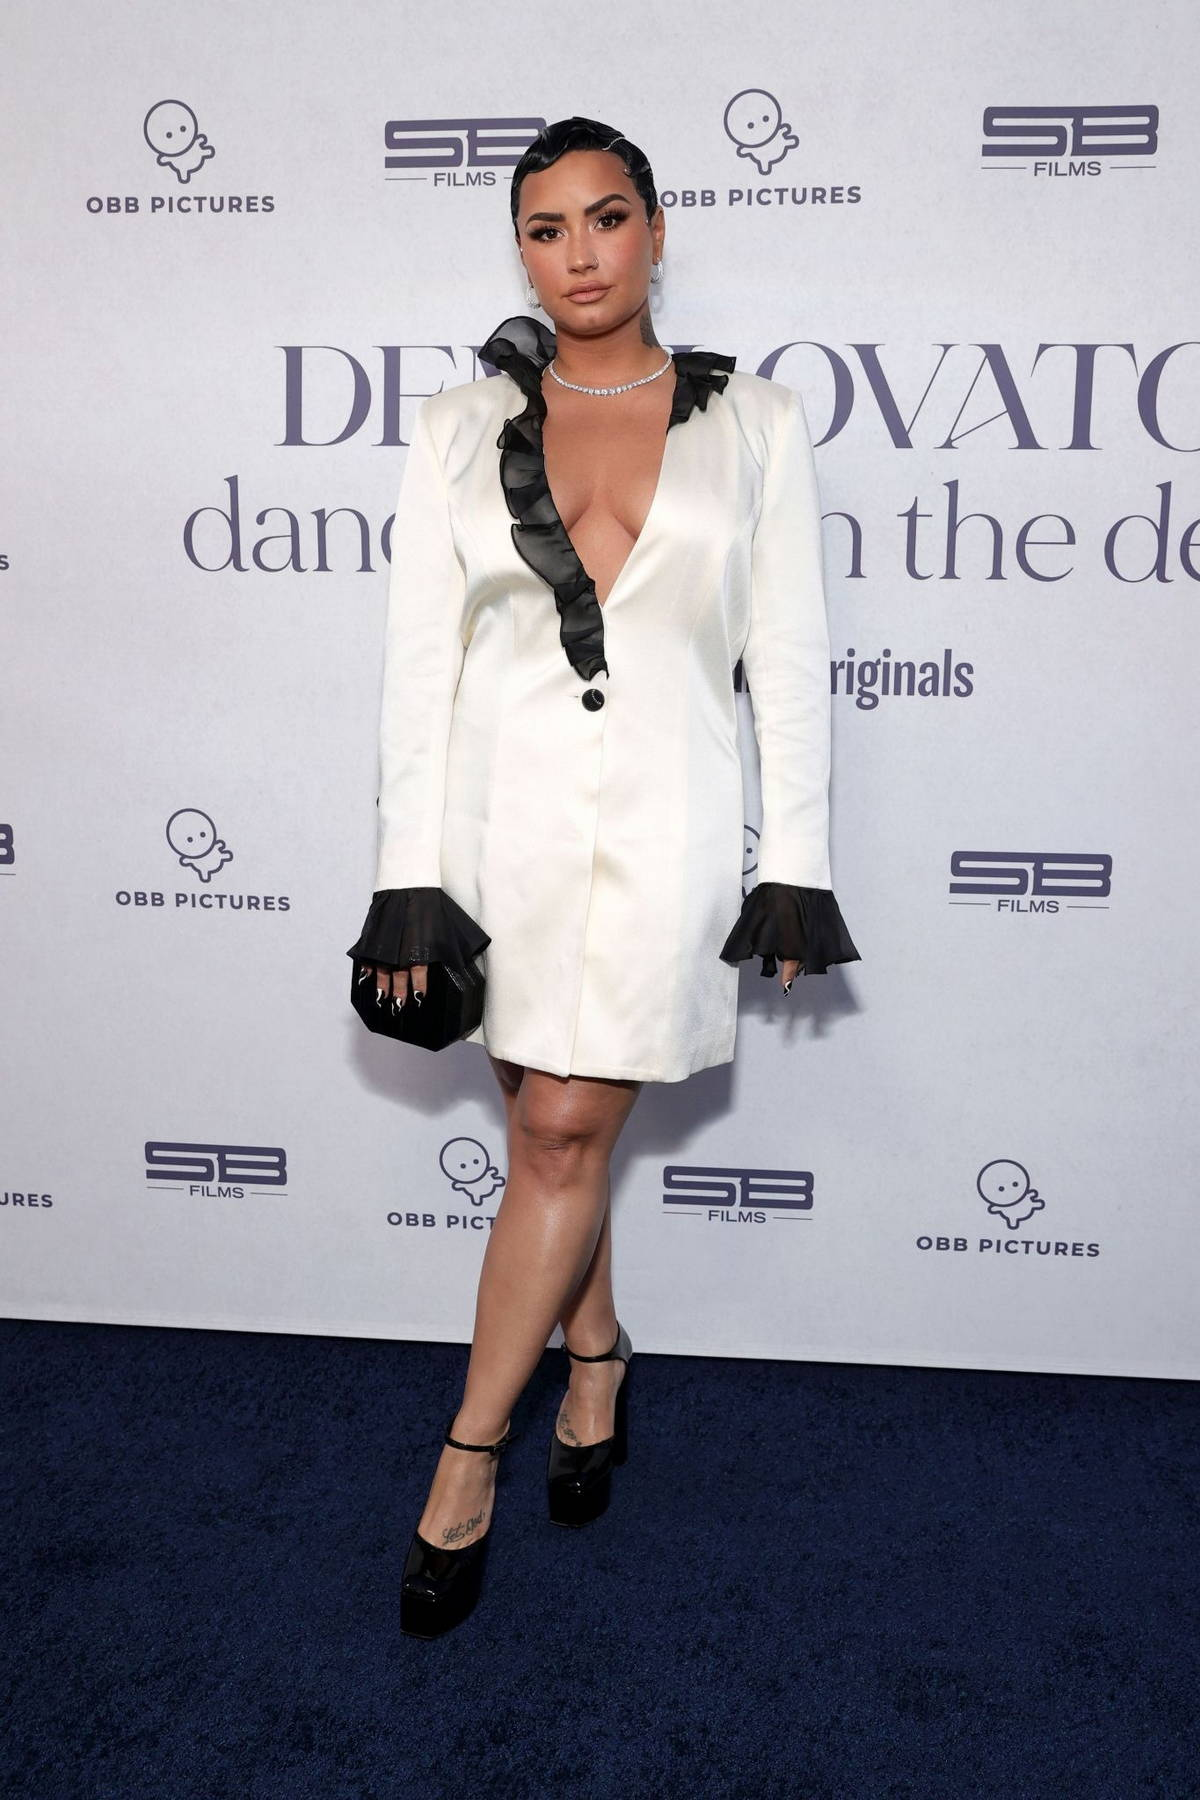 Demi Lovato attends the Premiere Event for her new YouTube Originals Docuseries in Beverly Hills, California